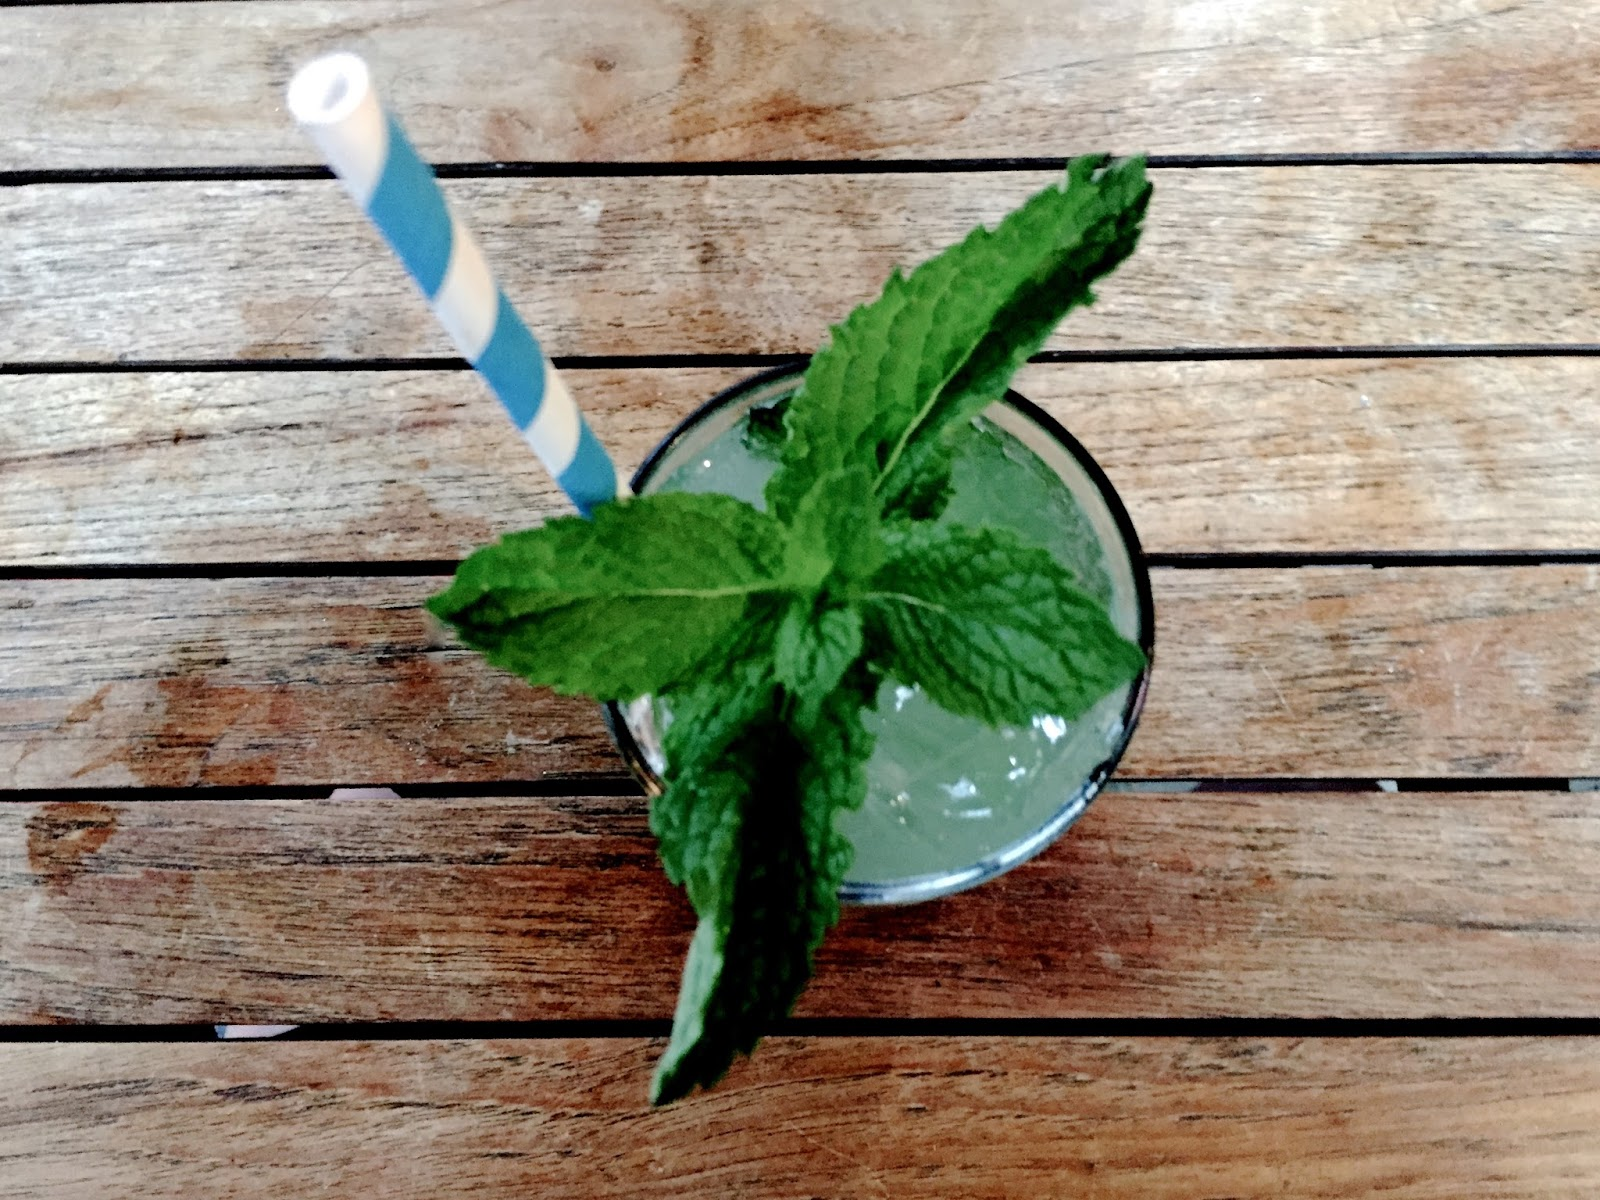 cocktail with mint and blue & white striped straw